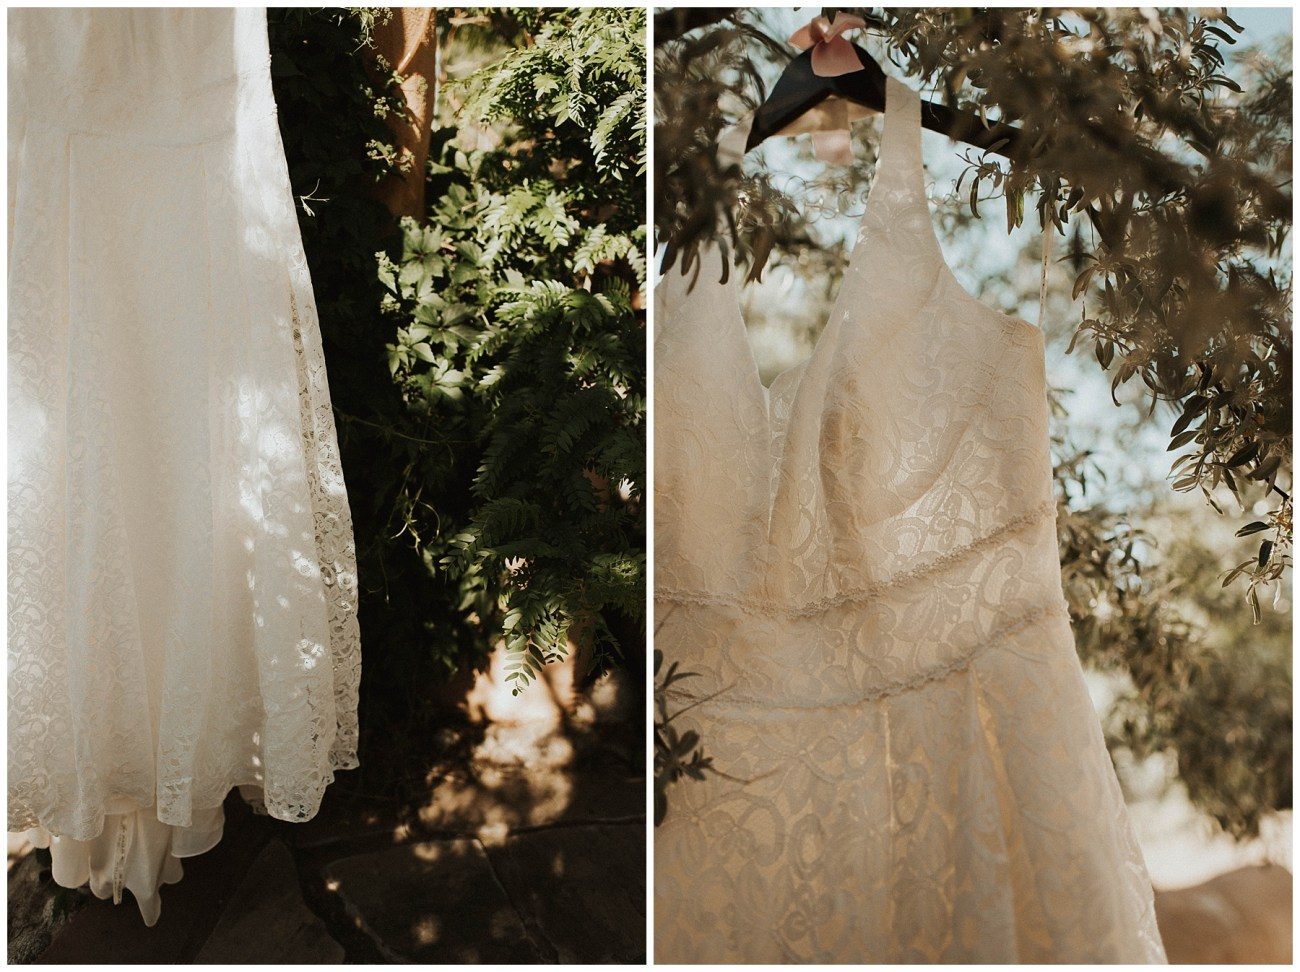 Ben + Lainee    Desert Colorado Wedding – Lauren F.otography 6028b2a8cc5c